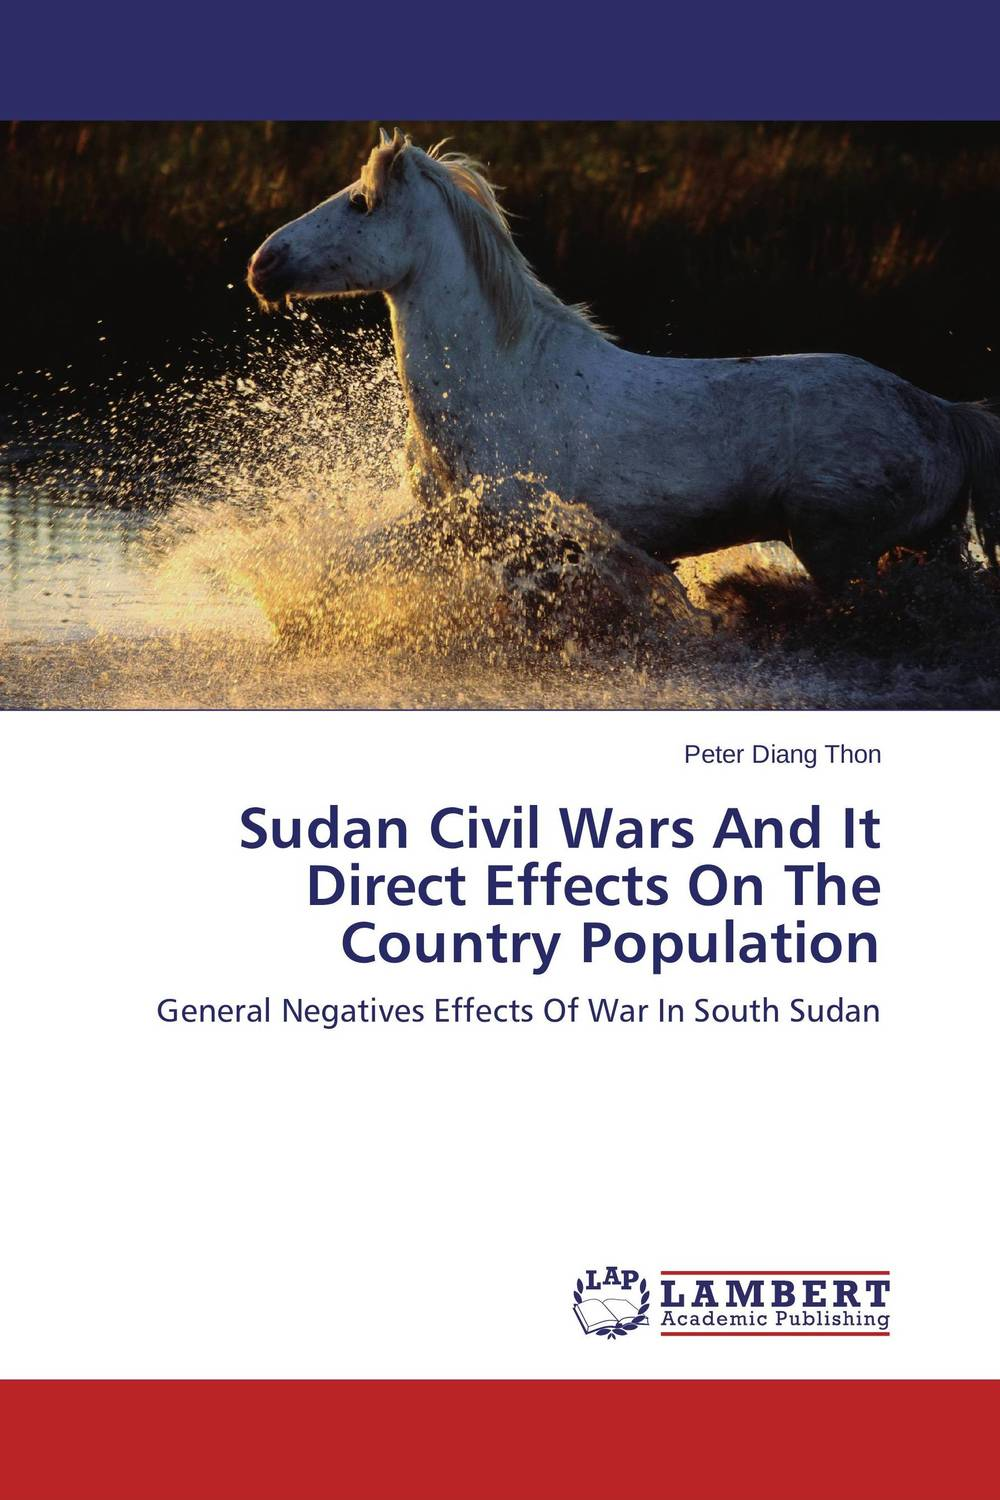 Sudan Civil Wars And It Direct Effects On The Country Population siilenyond kairos 2017 100